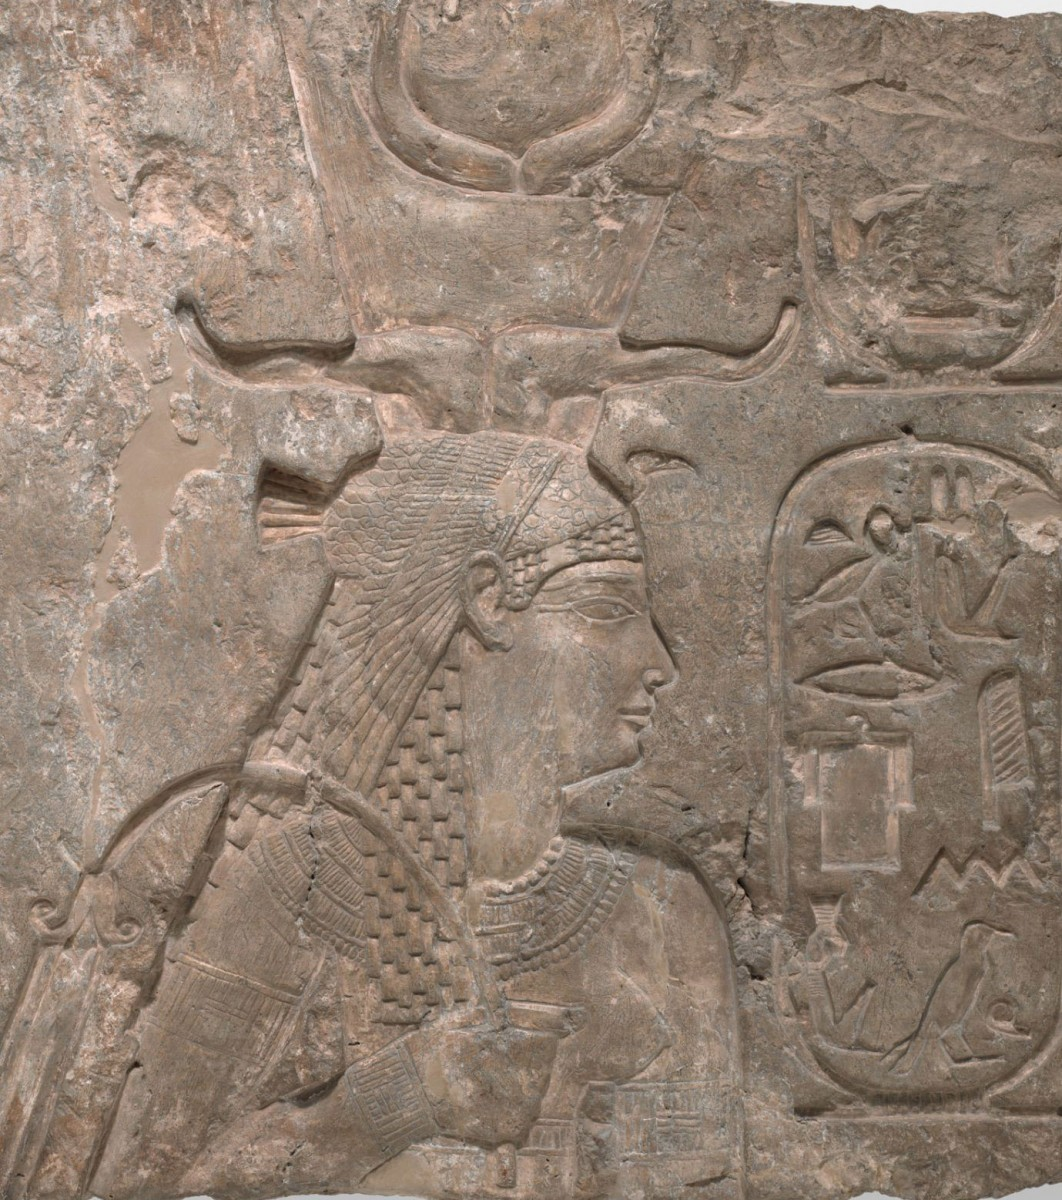 Arsinoë wearing her ornate crown on a wall relief in the Isis temple on Philae, a Nile island.